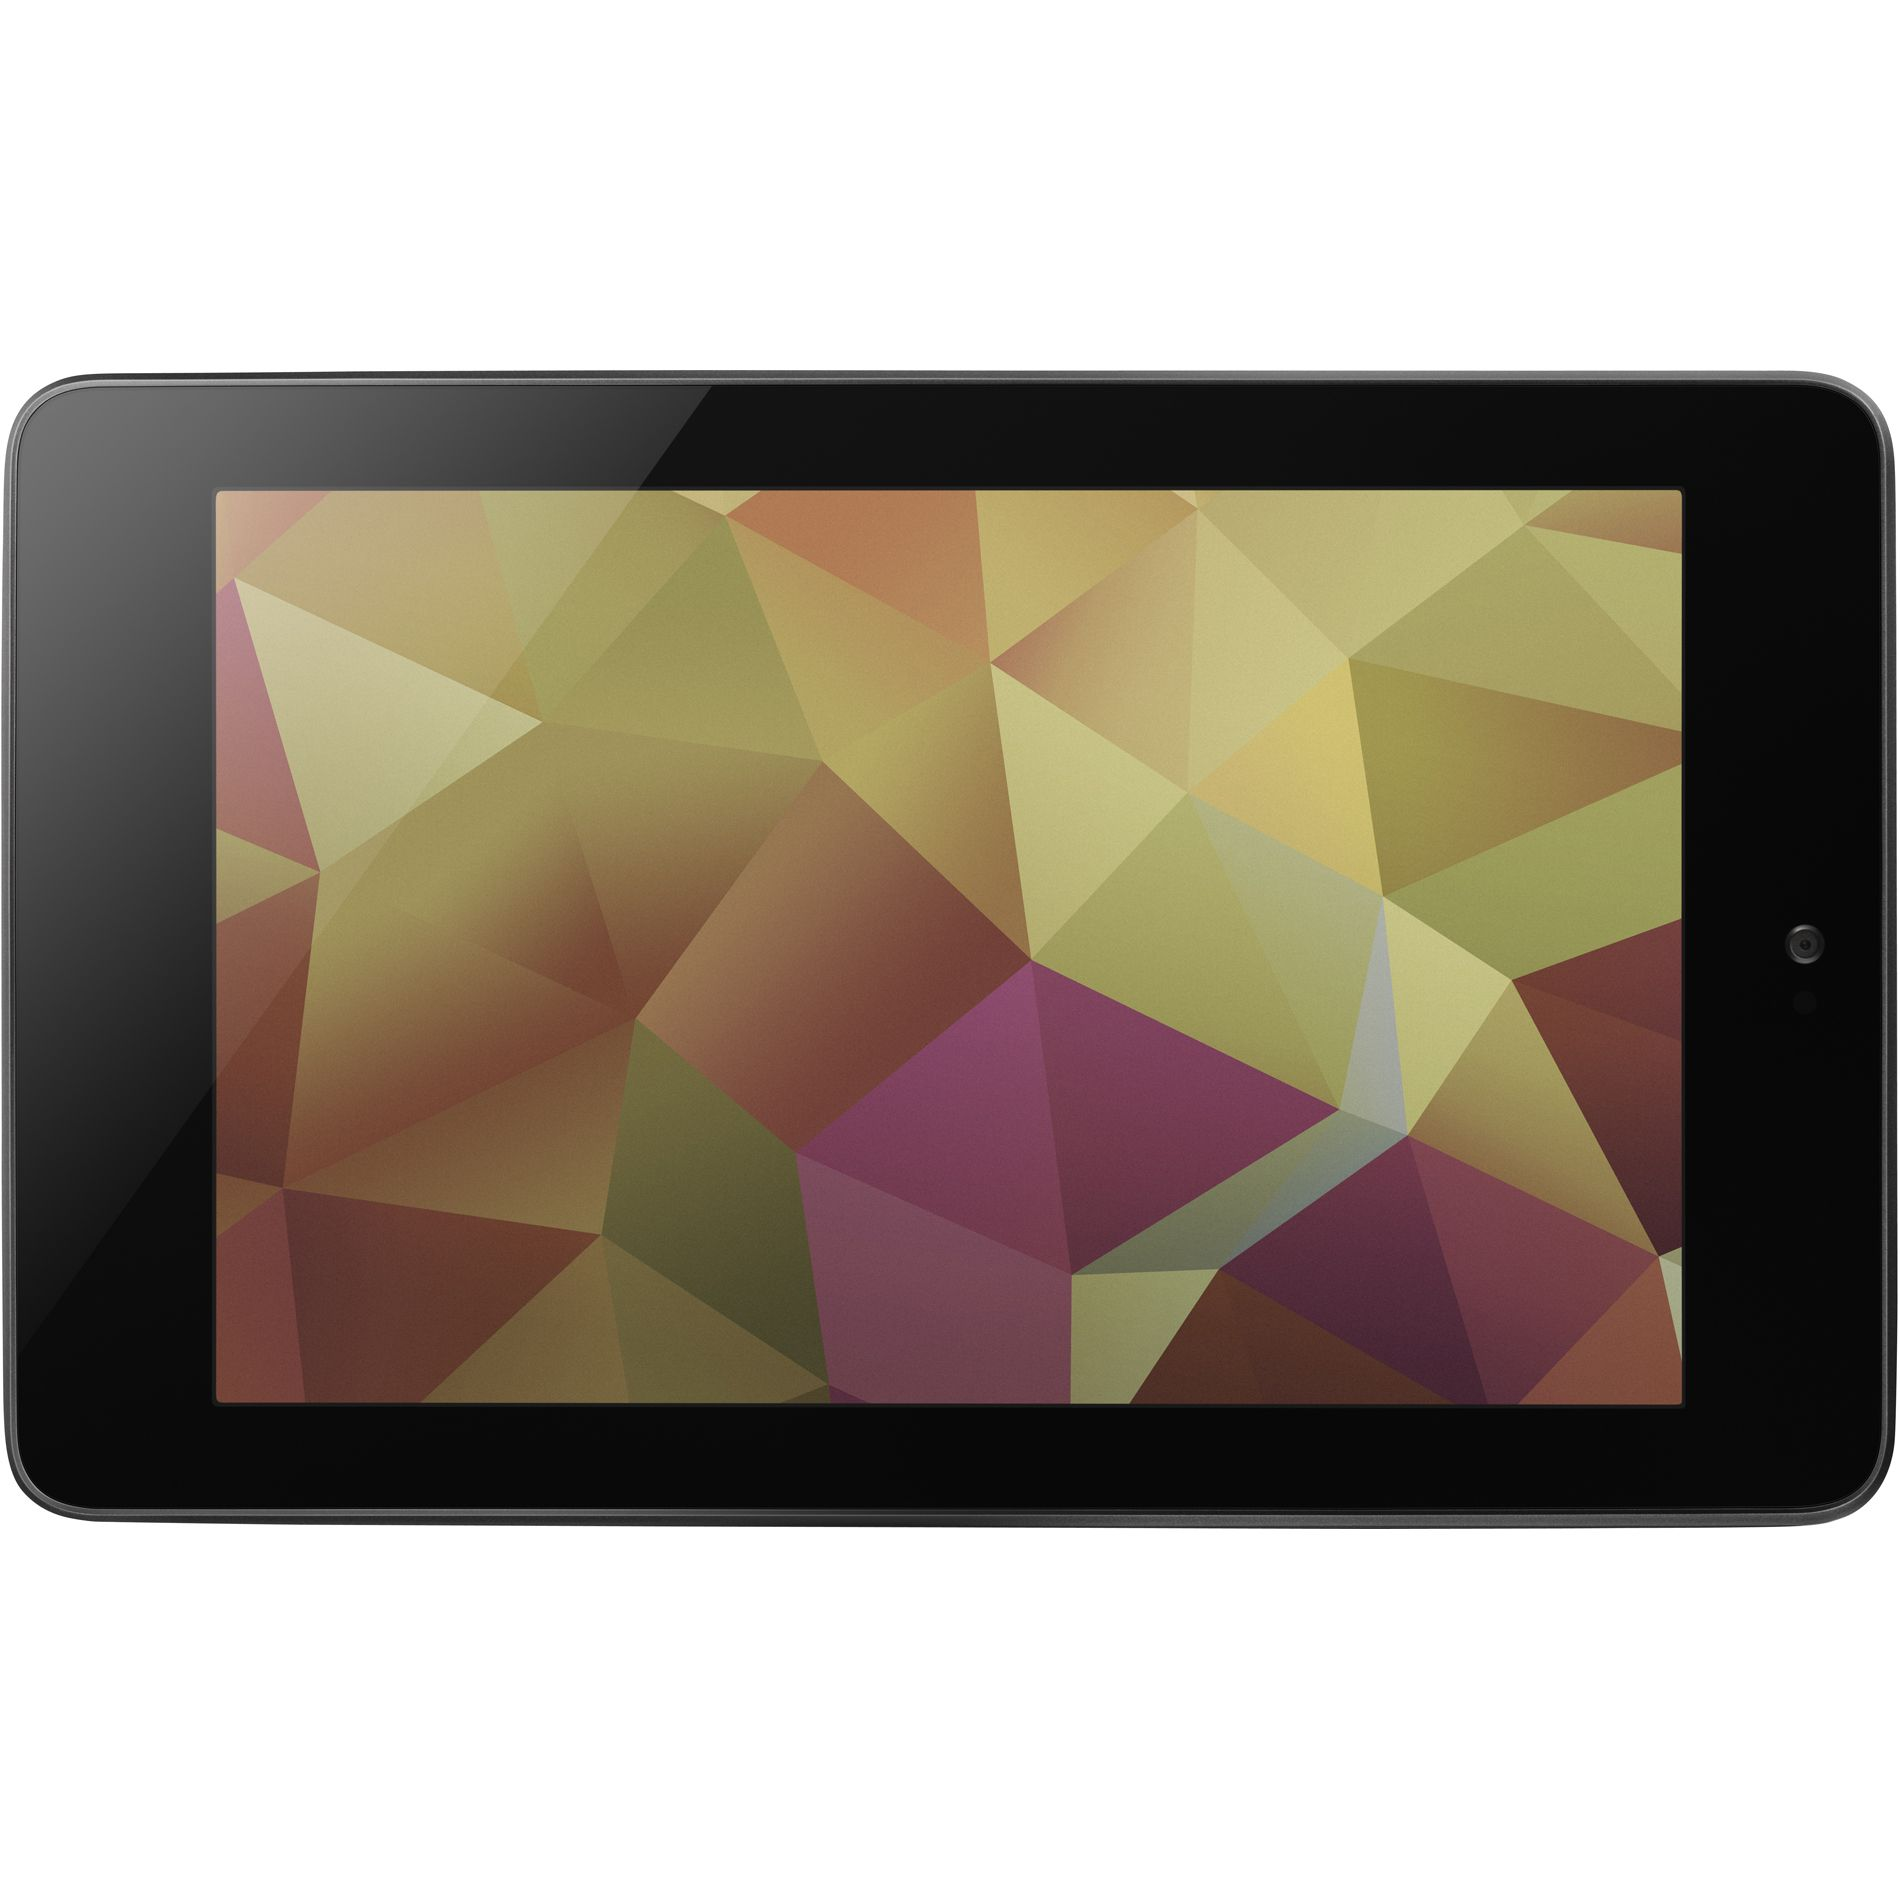 "Google Nexus 7"" IPS Quad-Core 32GB Tablet w/ Android 4.1 Jelly Bean                                                        at mygofer.com"